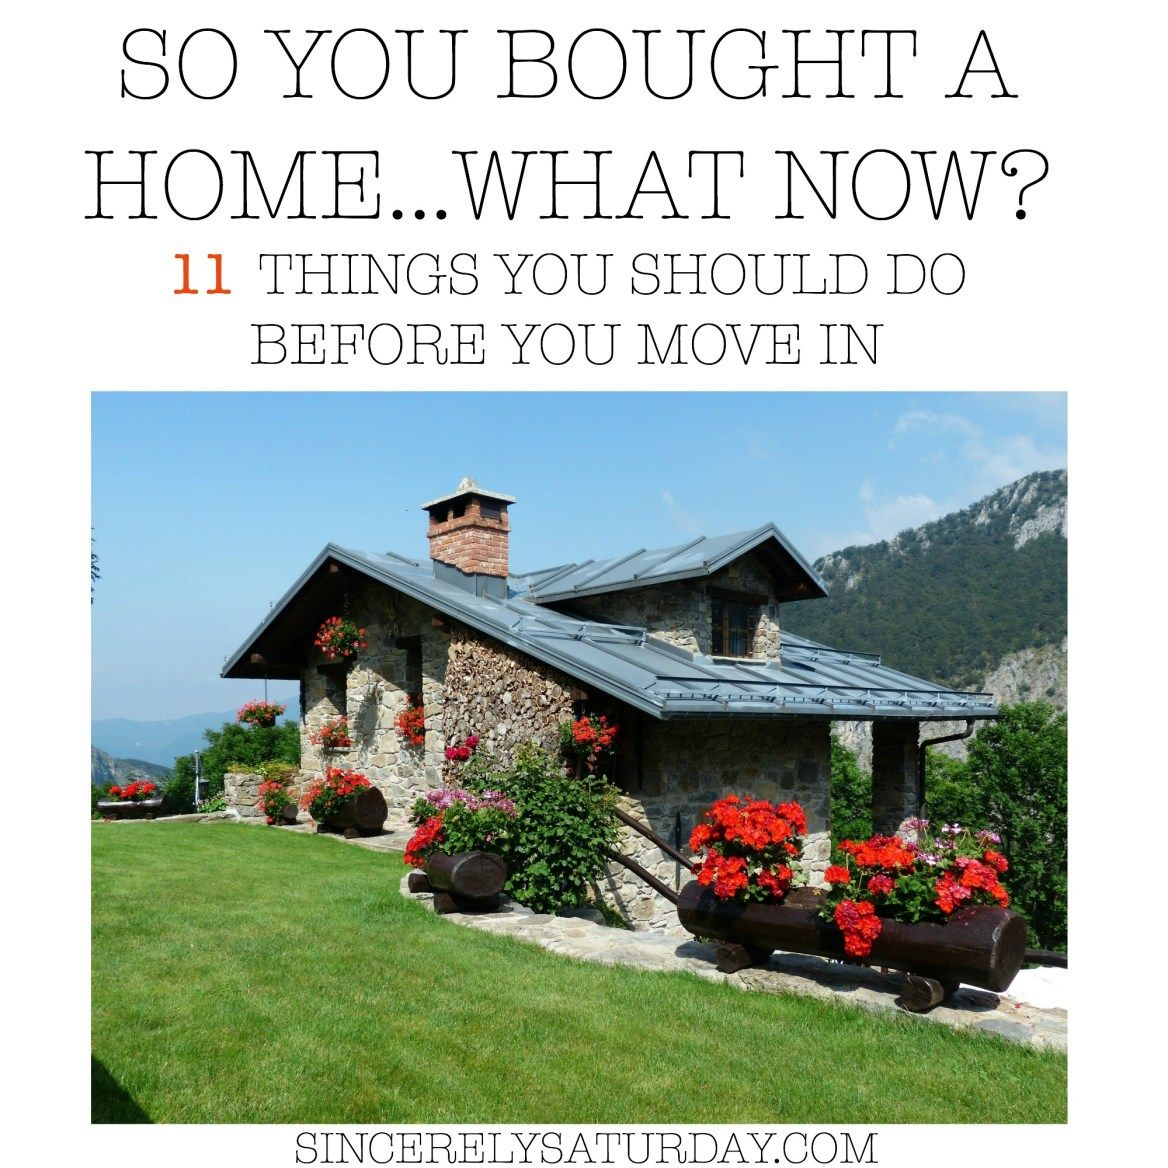 SO YOU BOUGHT A HOME...WHAT NOW?